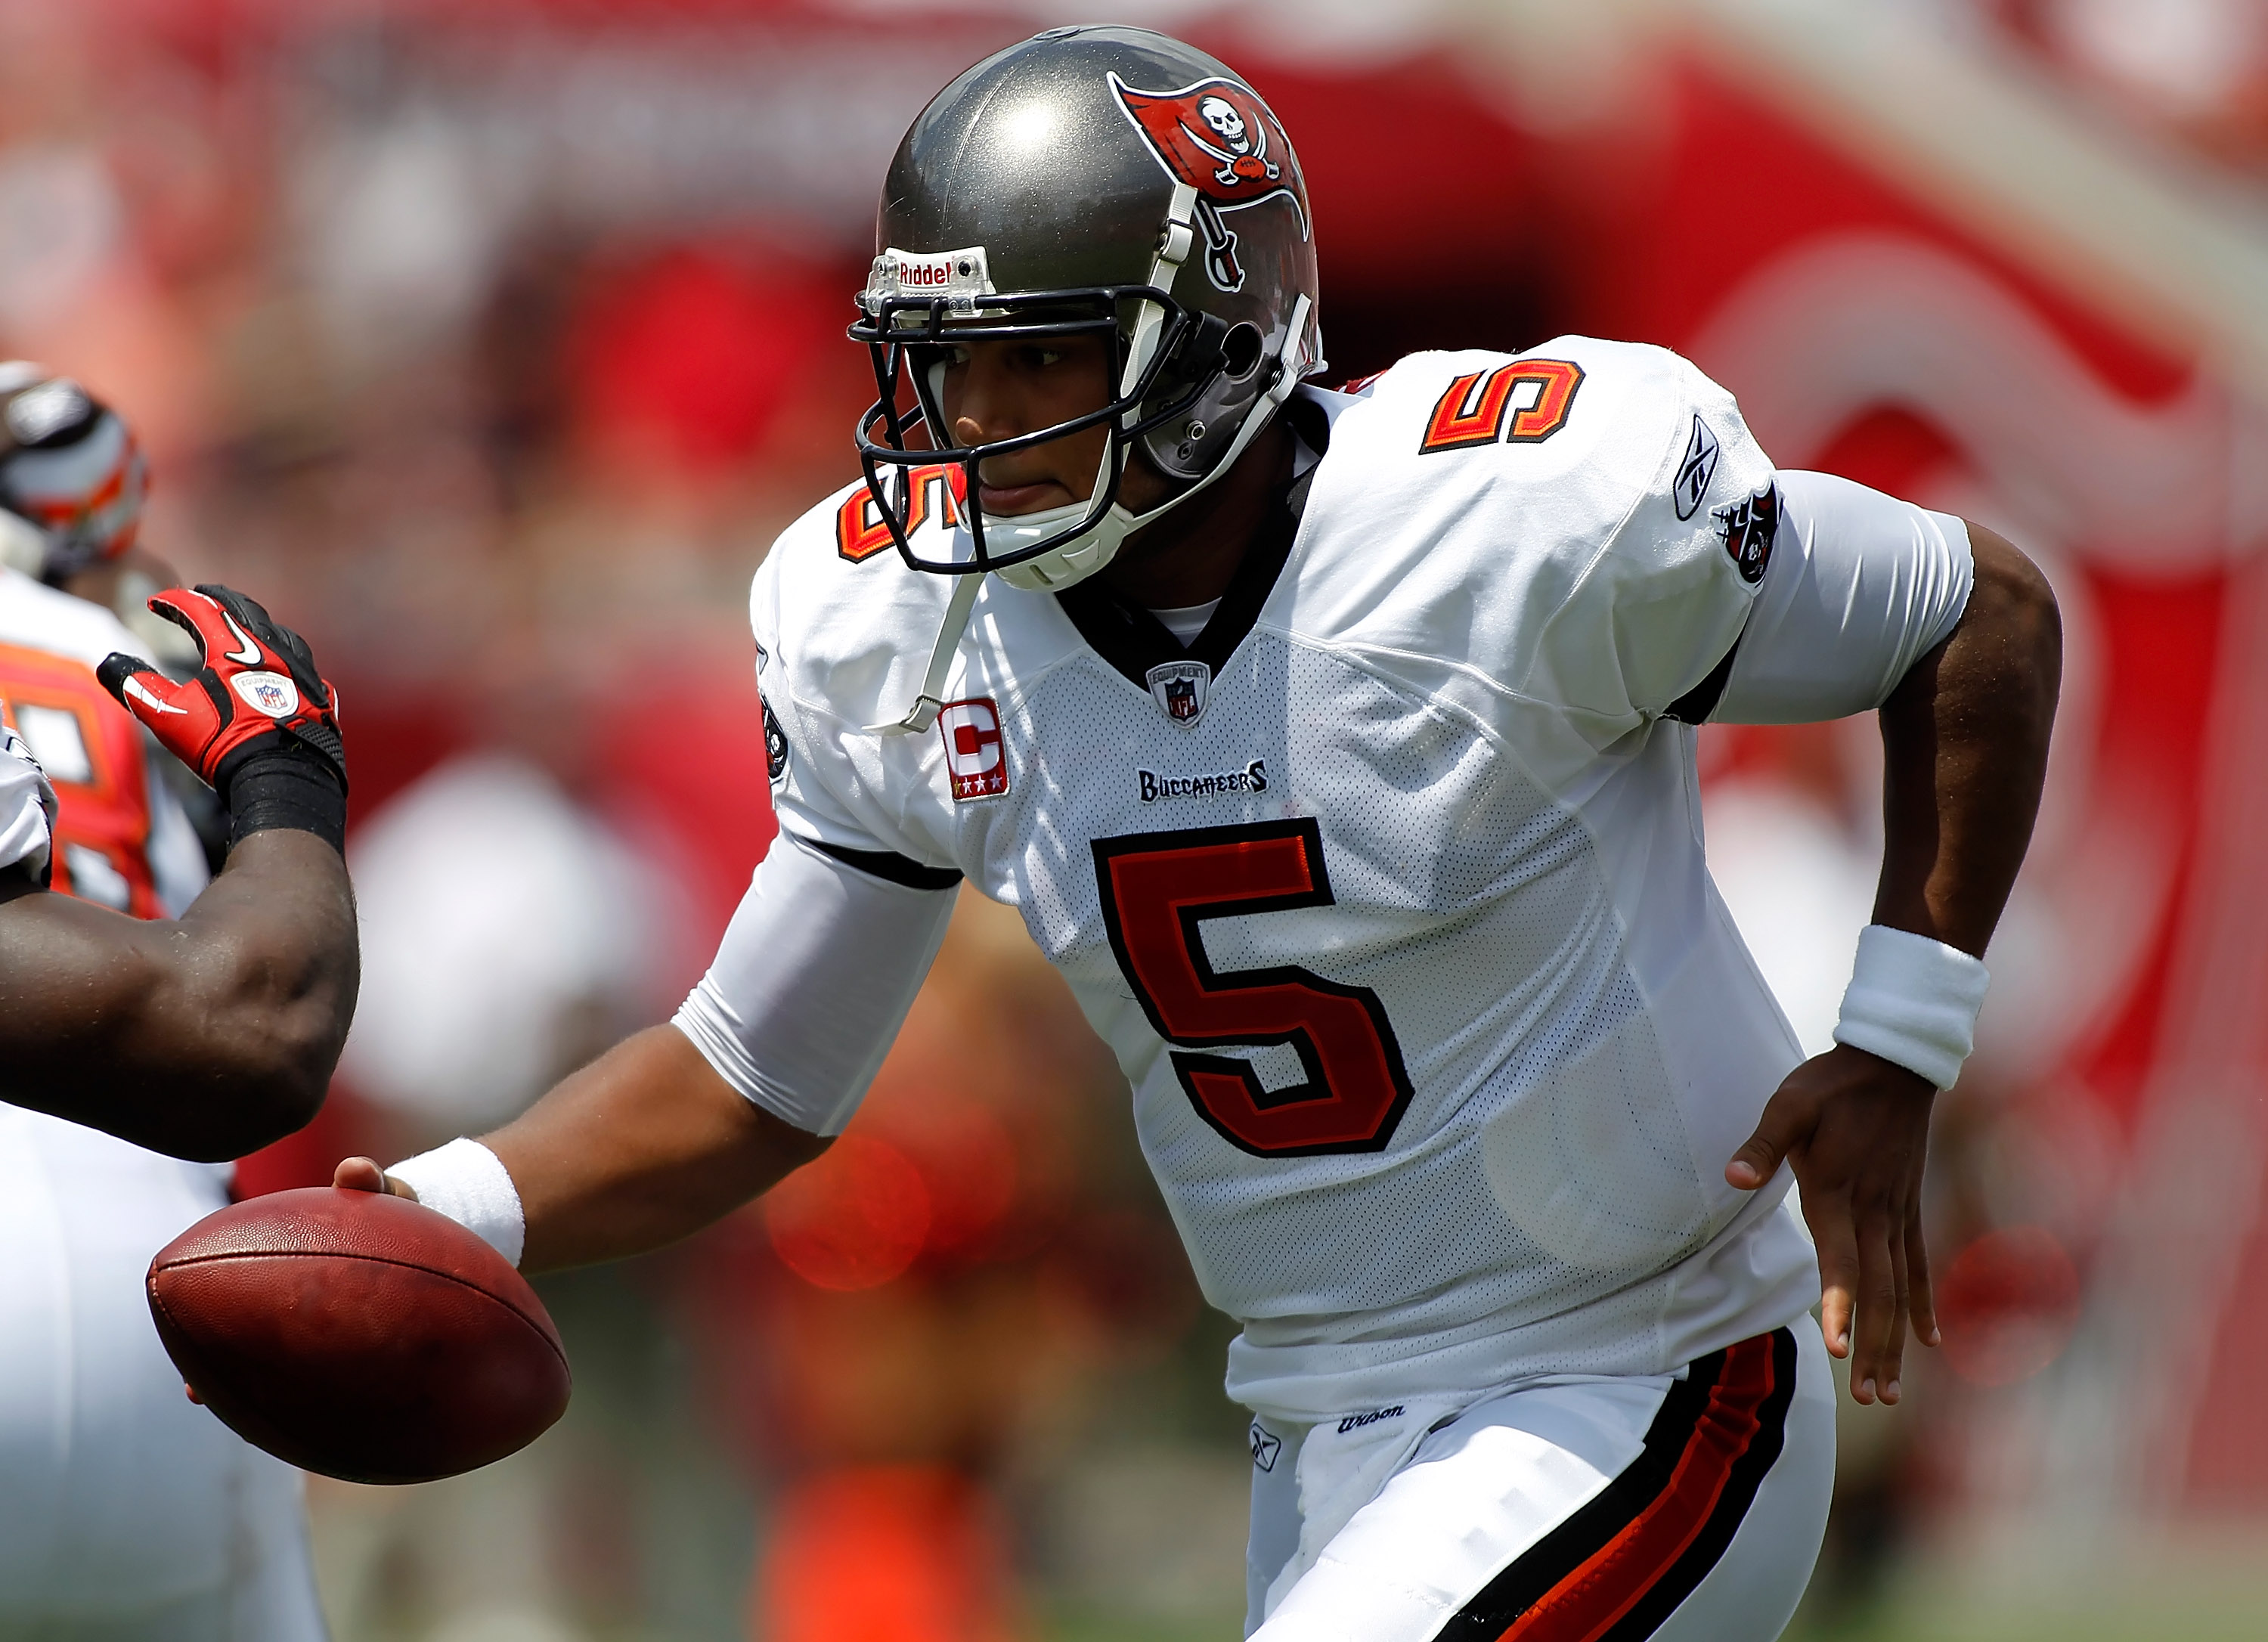 TAMPA, FL - SEPTEMBER 12:  Quarterback Josh Freeman #5 of the Tampa Bay Buccaneers hands the ball off against the Cleveland Browns during the NFL season opener game at Raymond James Stadium on September 12, 2010 in Tampa, Florida.  (Photo by J. Meric/Gett